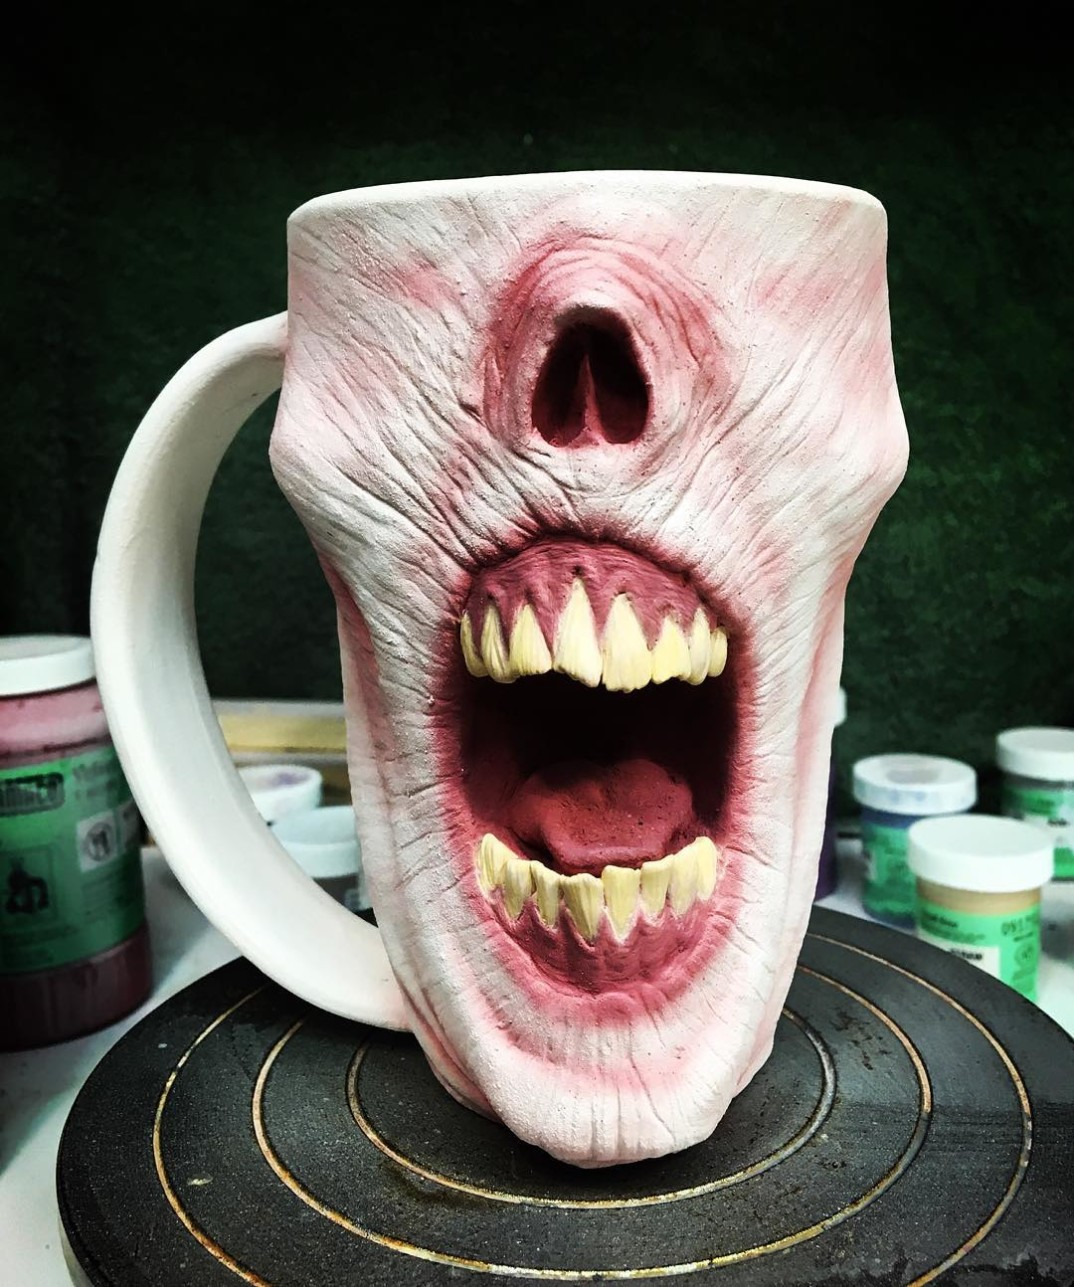 tazza-horror-zombie-joe-kevin-turkey-merck-8